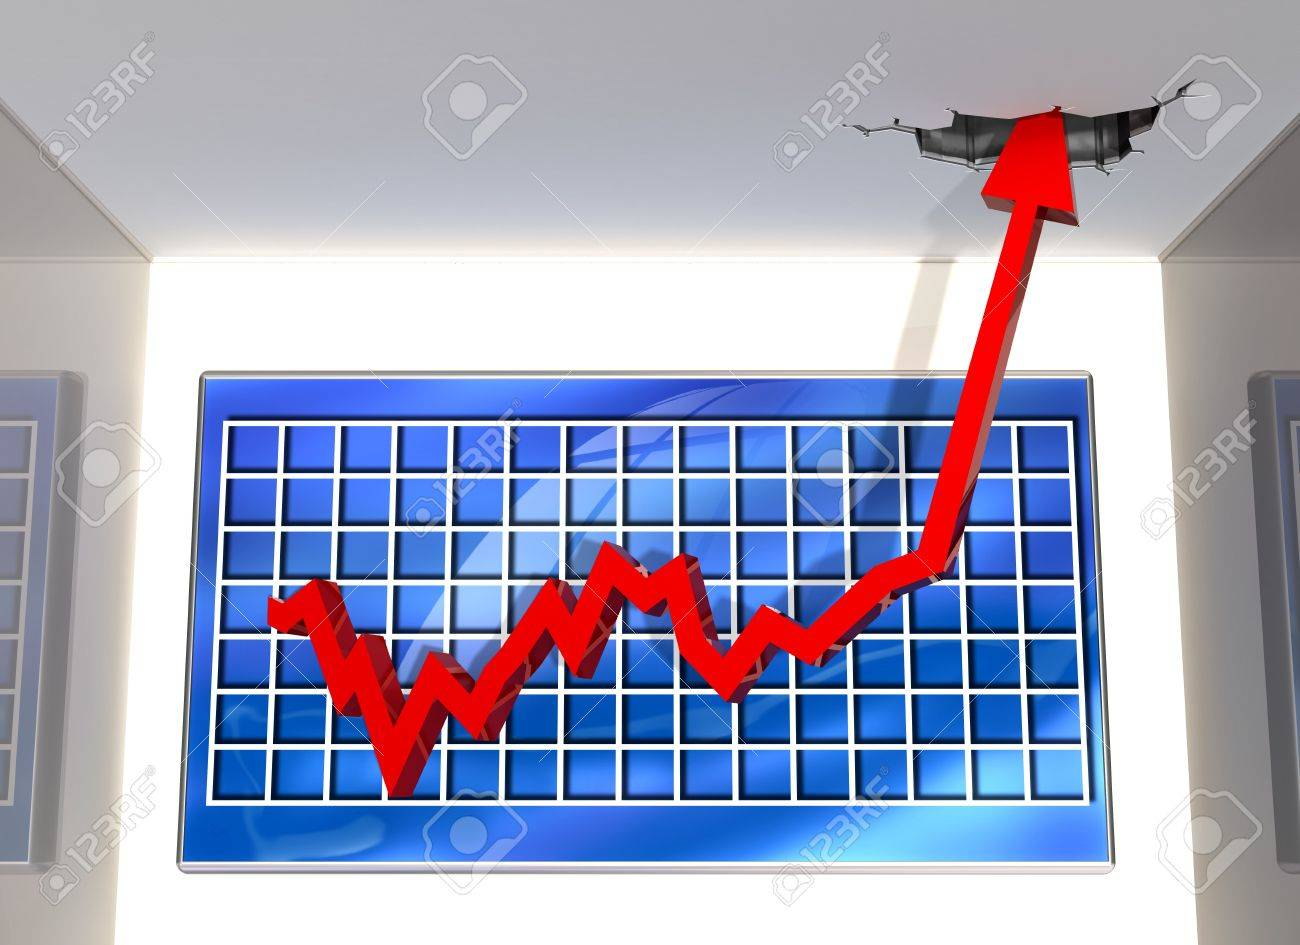 3773389-illustration-of-a-graph-where-th